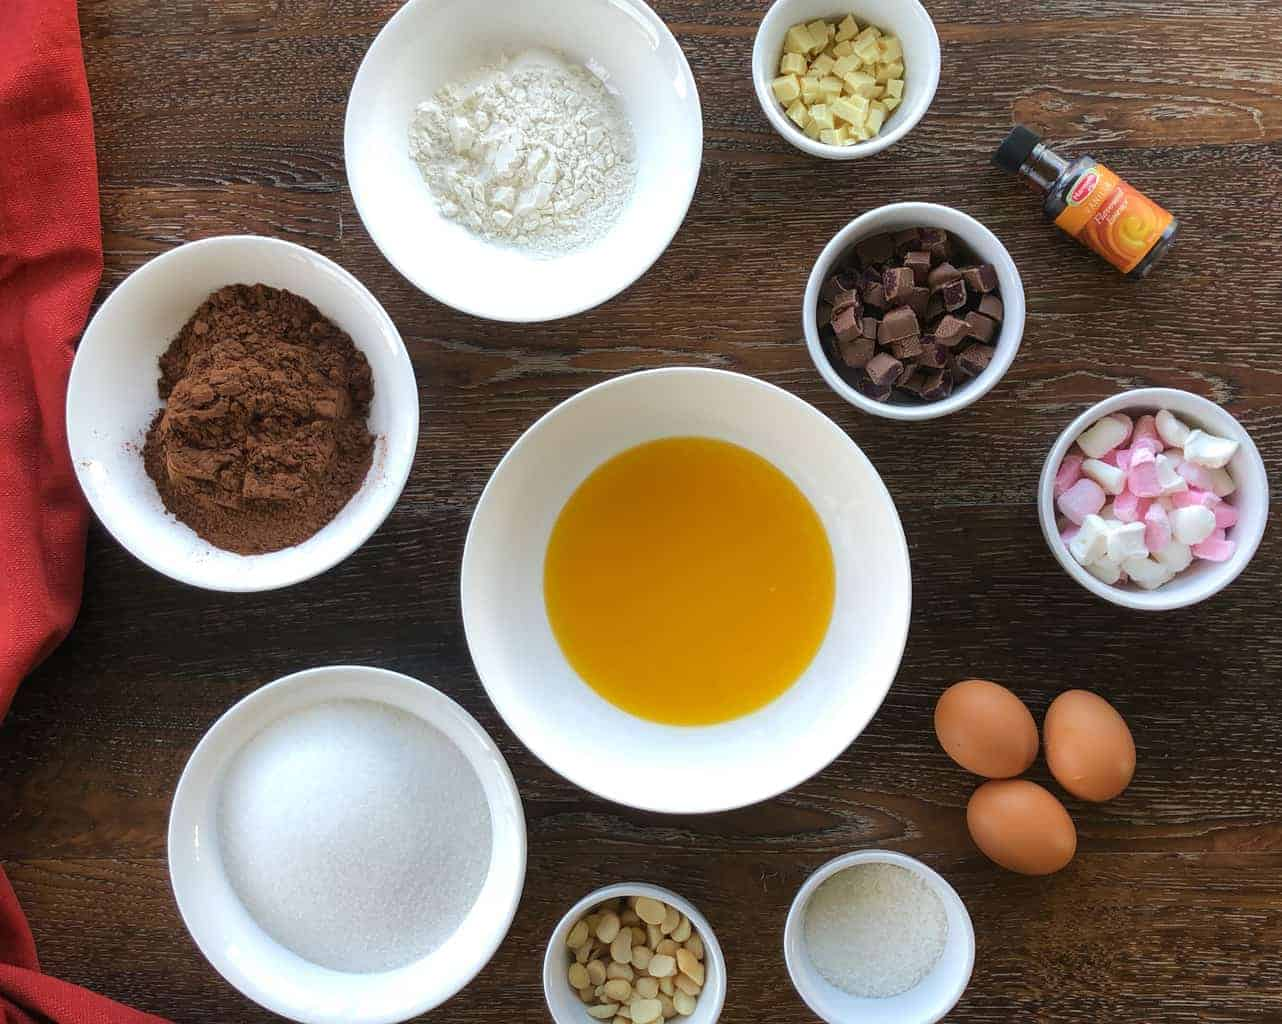 Ingredients for rocky road brownie